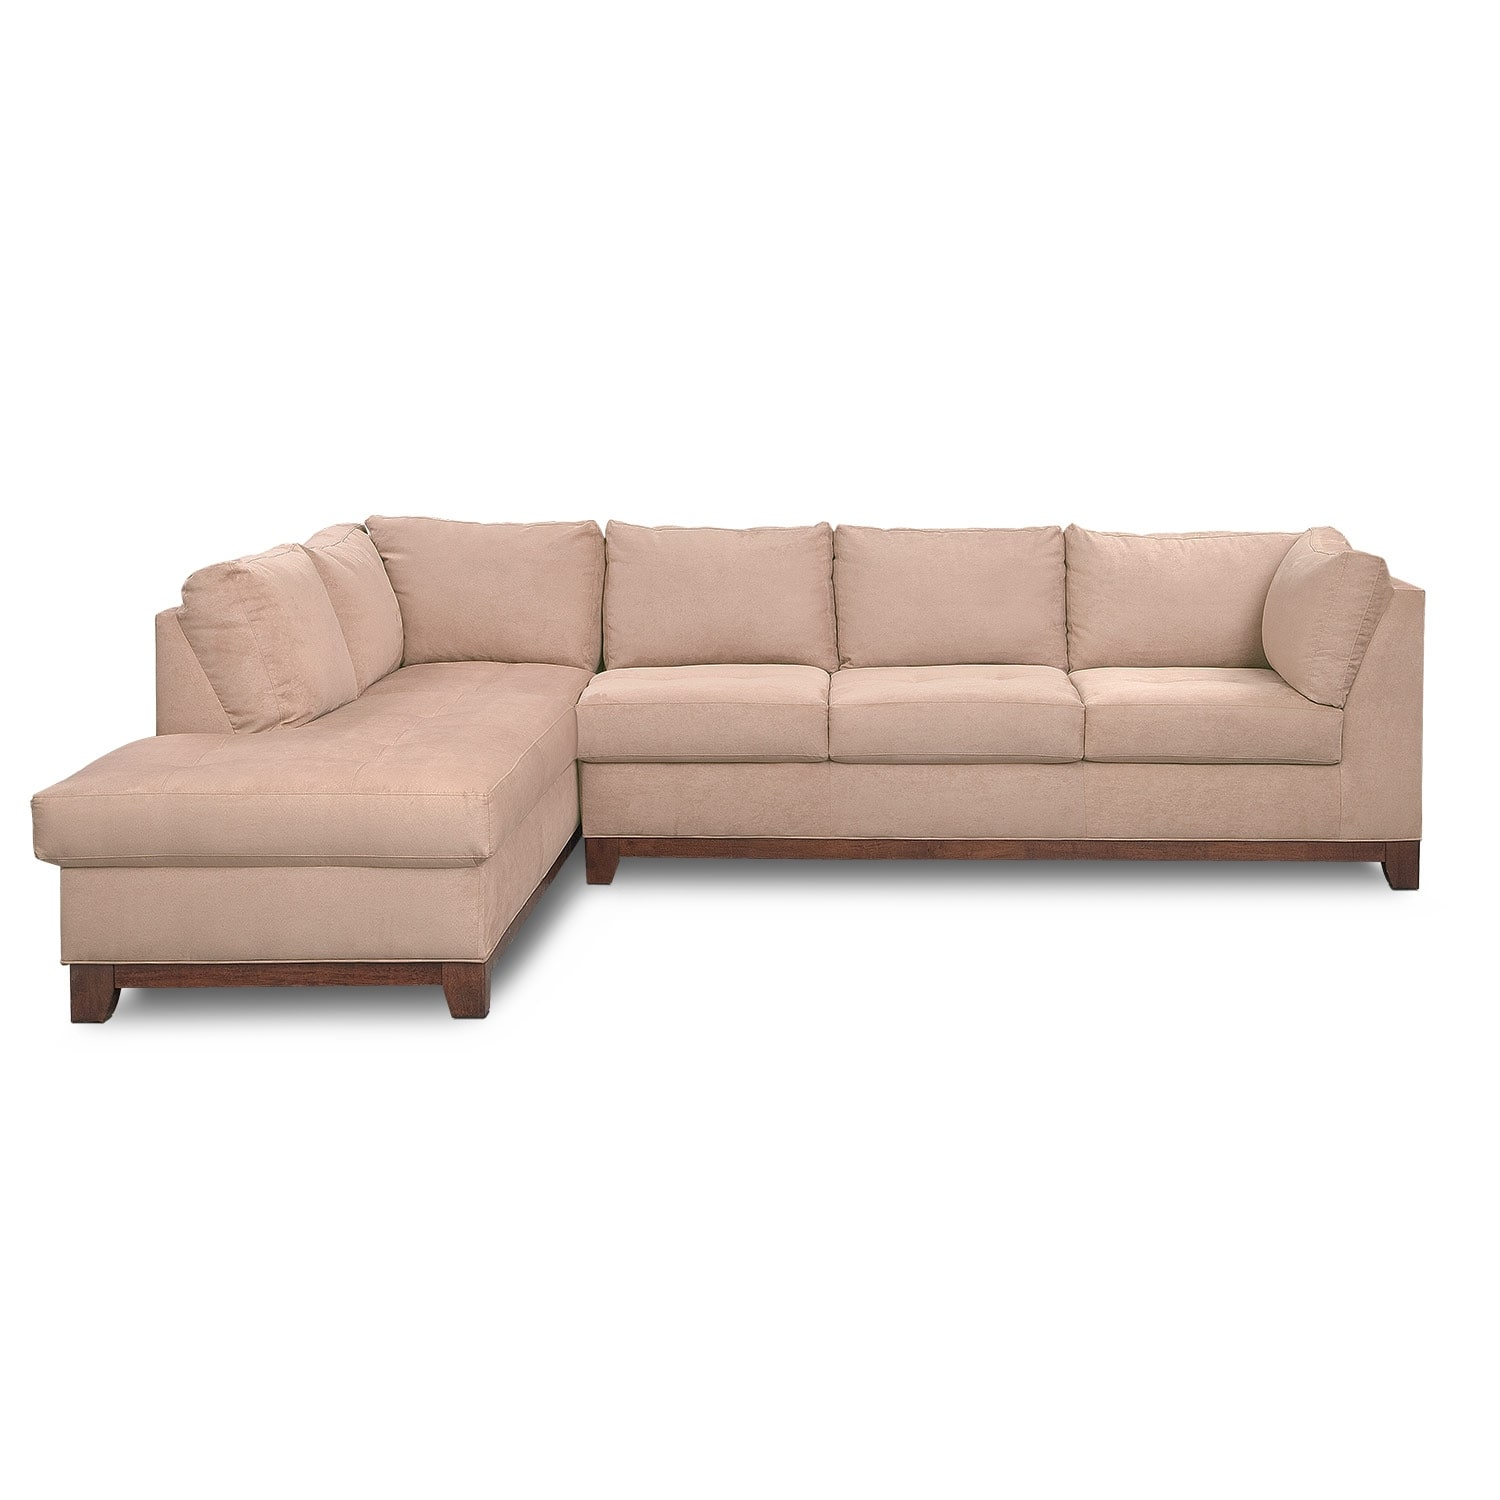 where to donate sectional sofa broyhill perspectives review soho 2 piece with left facing chaise